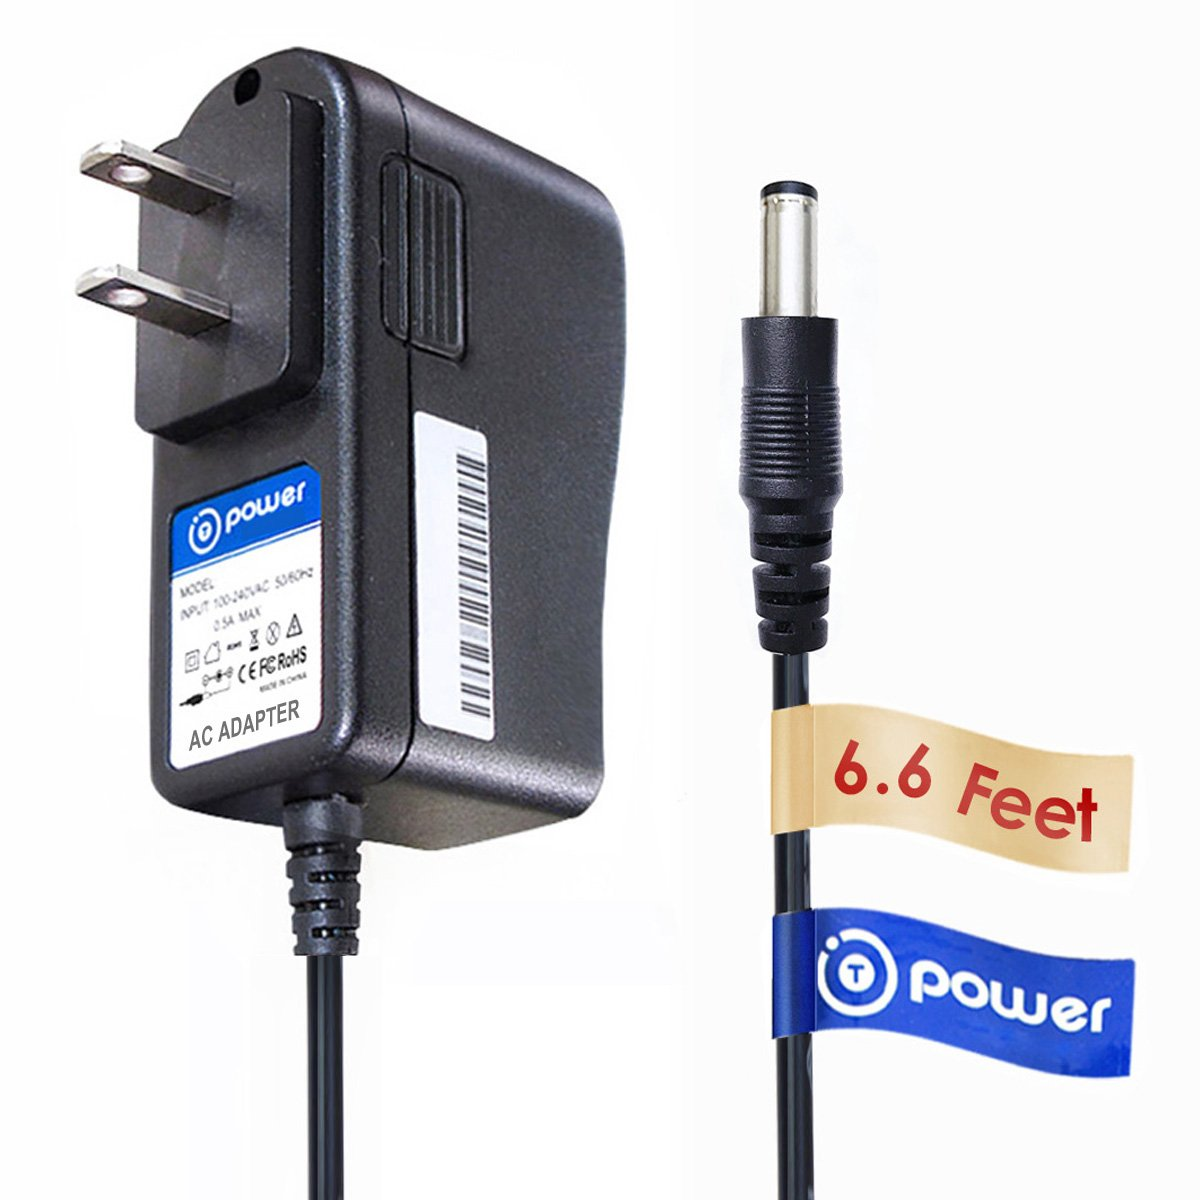 T-Power Ac Adapter Charger for Vtech Safe /& Sound VM301 VM321 BU VM321-2 BU VM321-2 BU VM321BU VM321PU Video Baby Monitor and Camera 6.6 ft Note: We provide Smart connector plug tips Baby /& Parent Unit Replacement Switching Power Supply Cord Charger